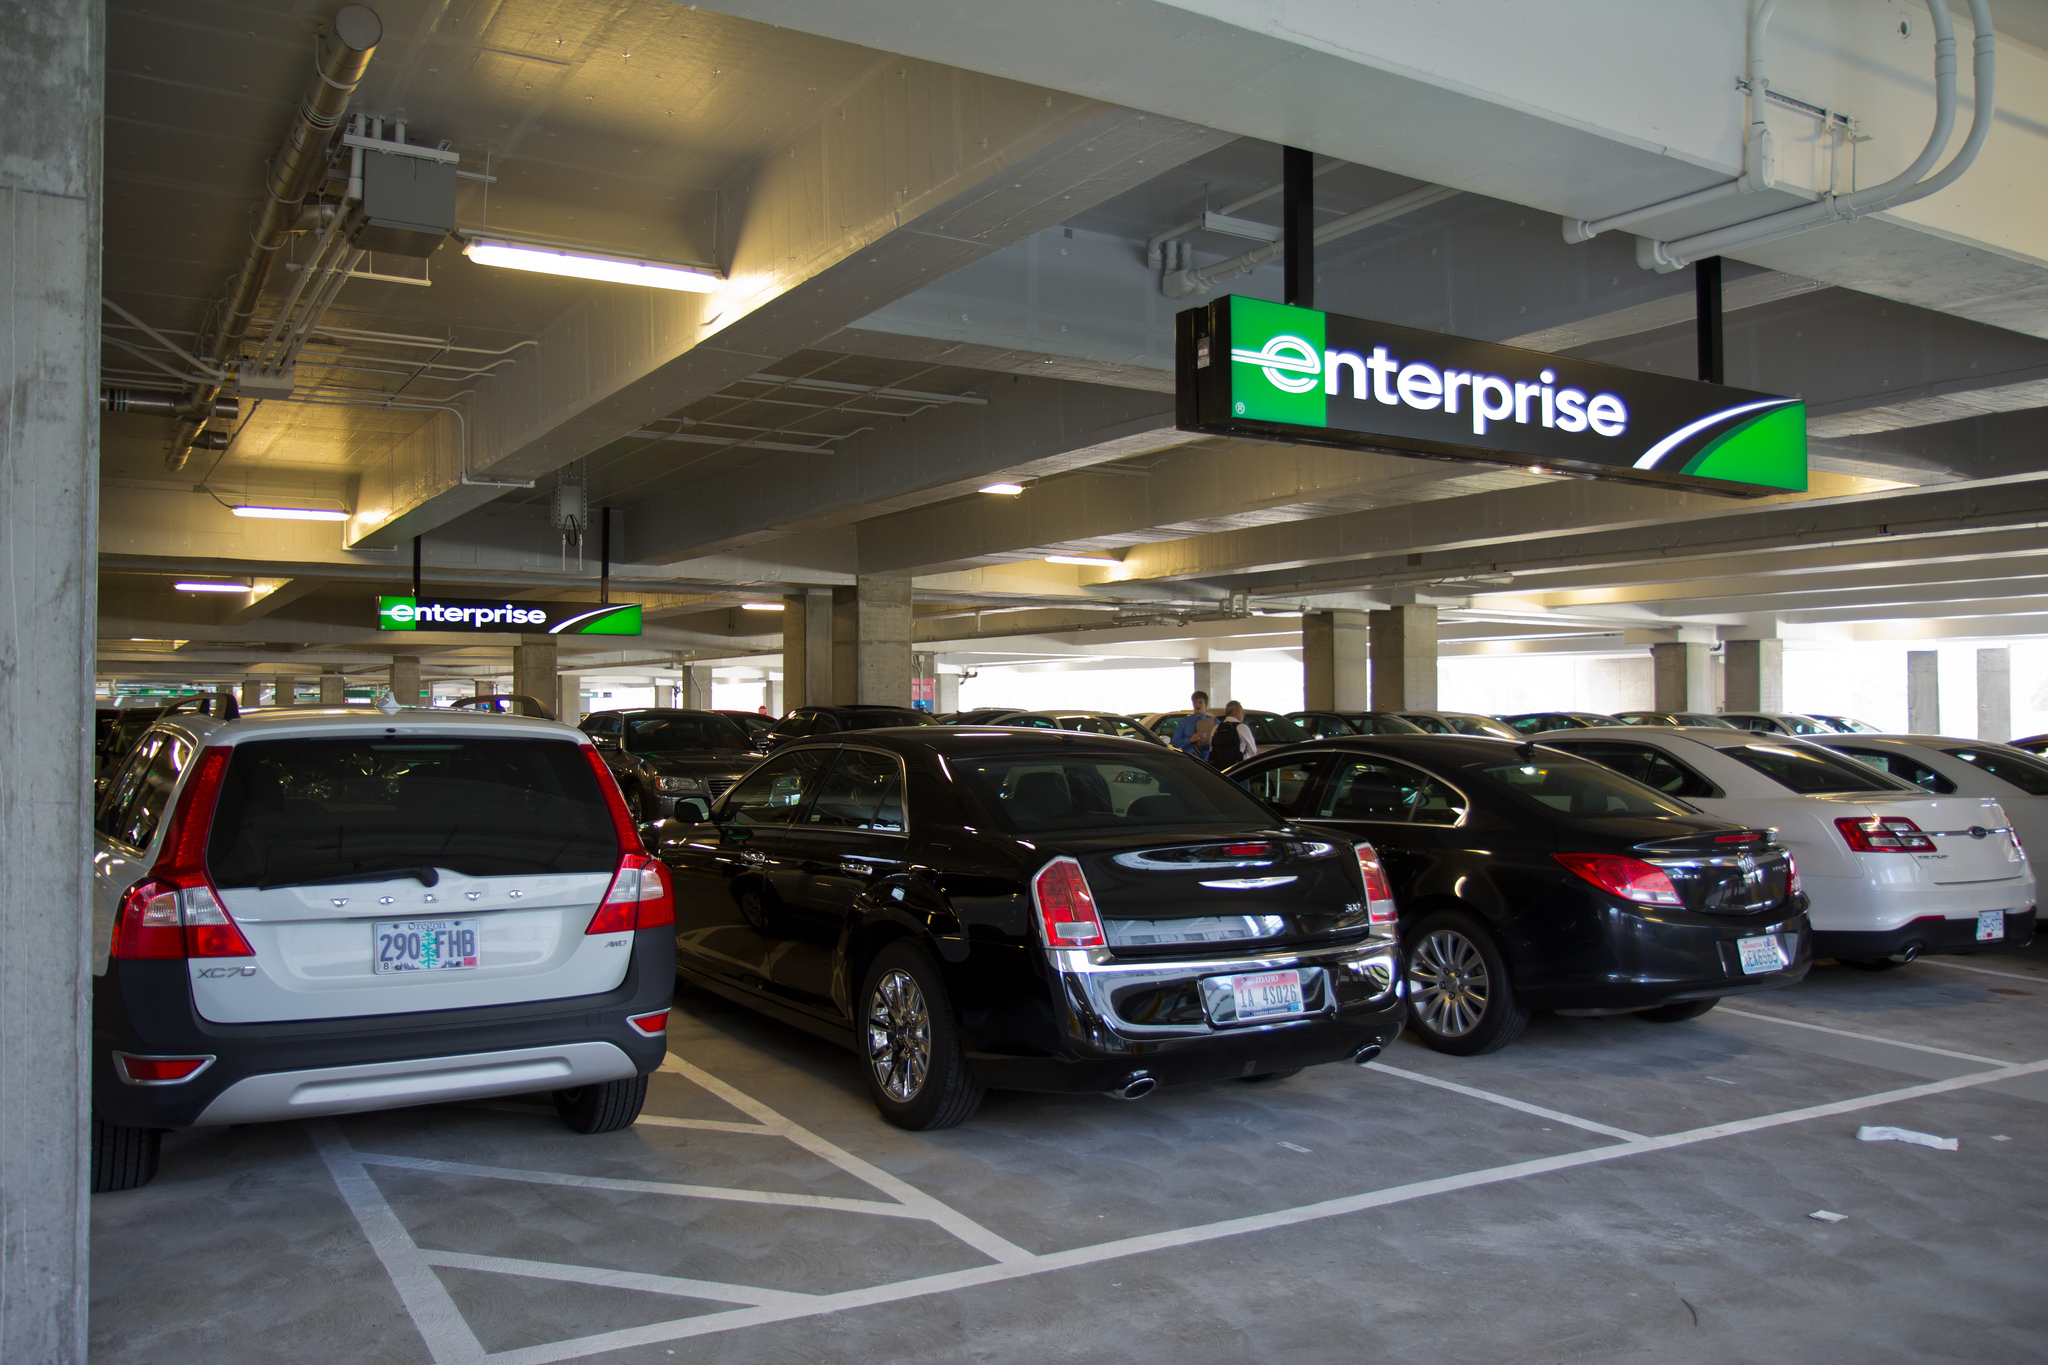 Enterprise Car Rental Boston